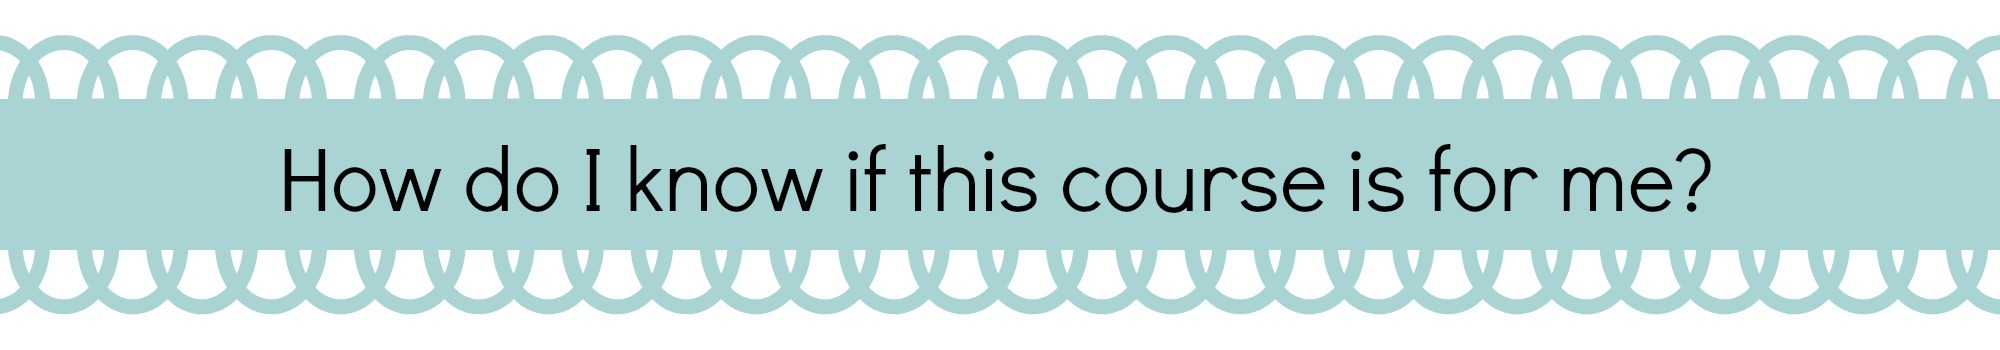 CourseForMe_ribbon_banner.jpg